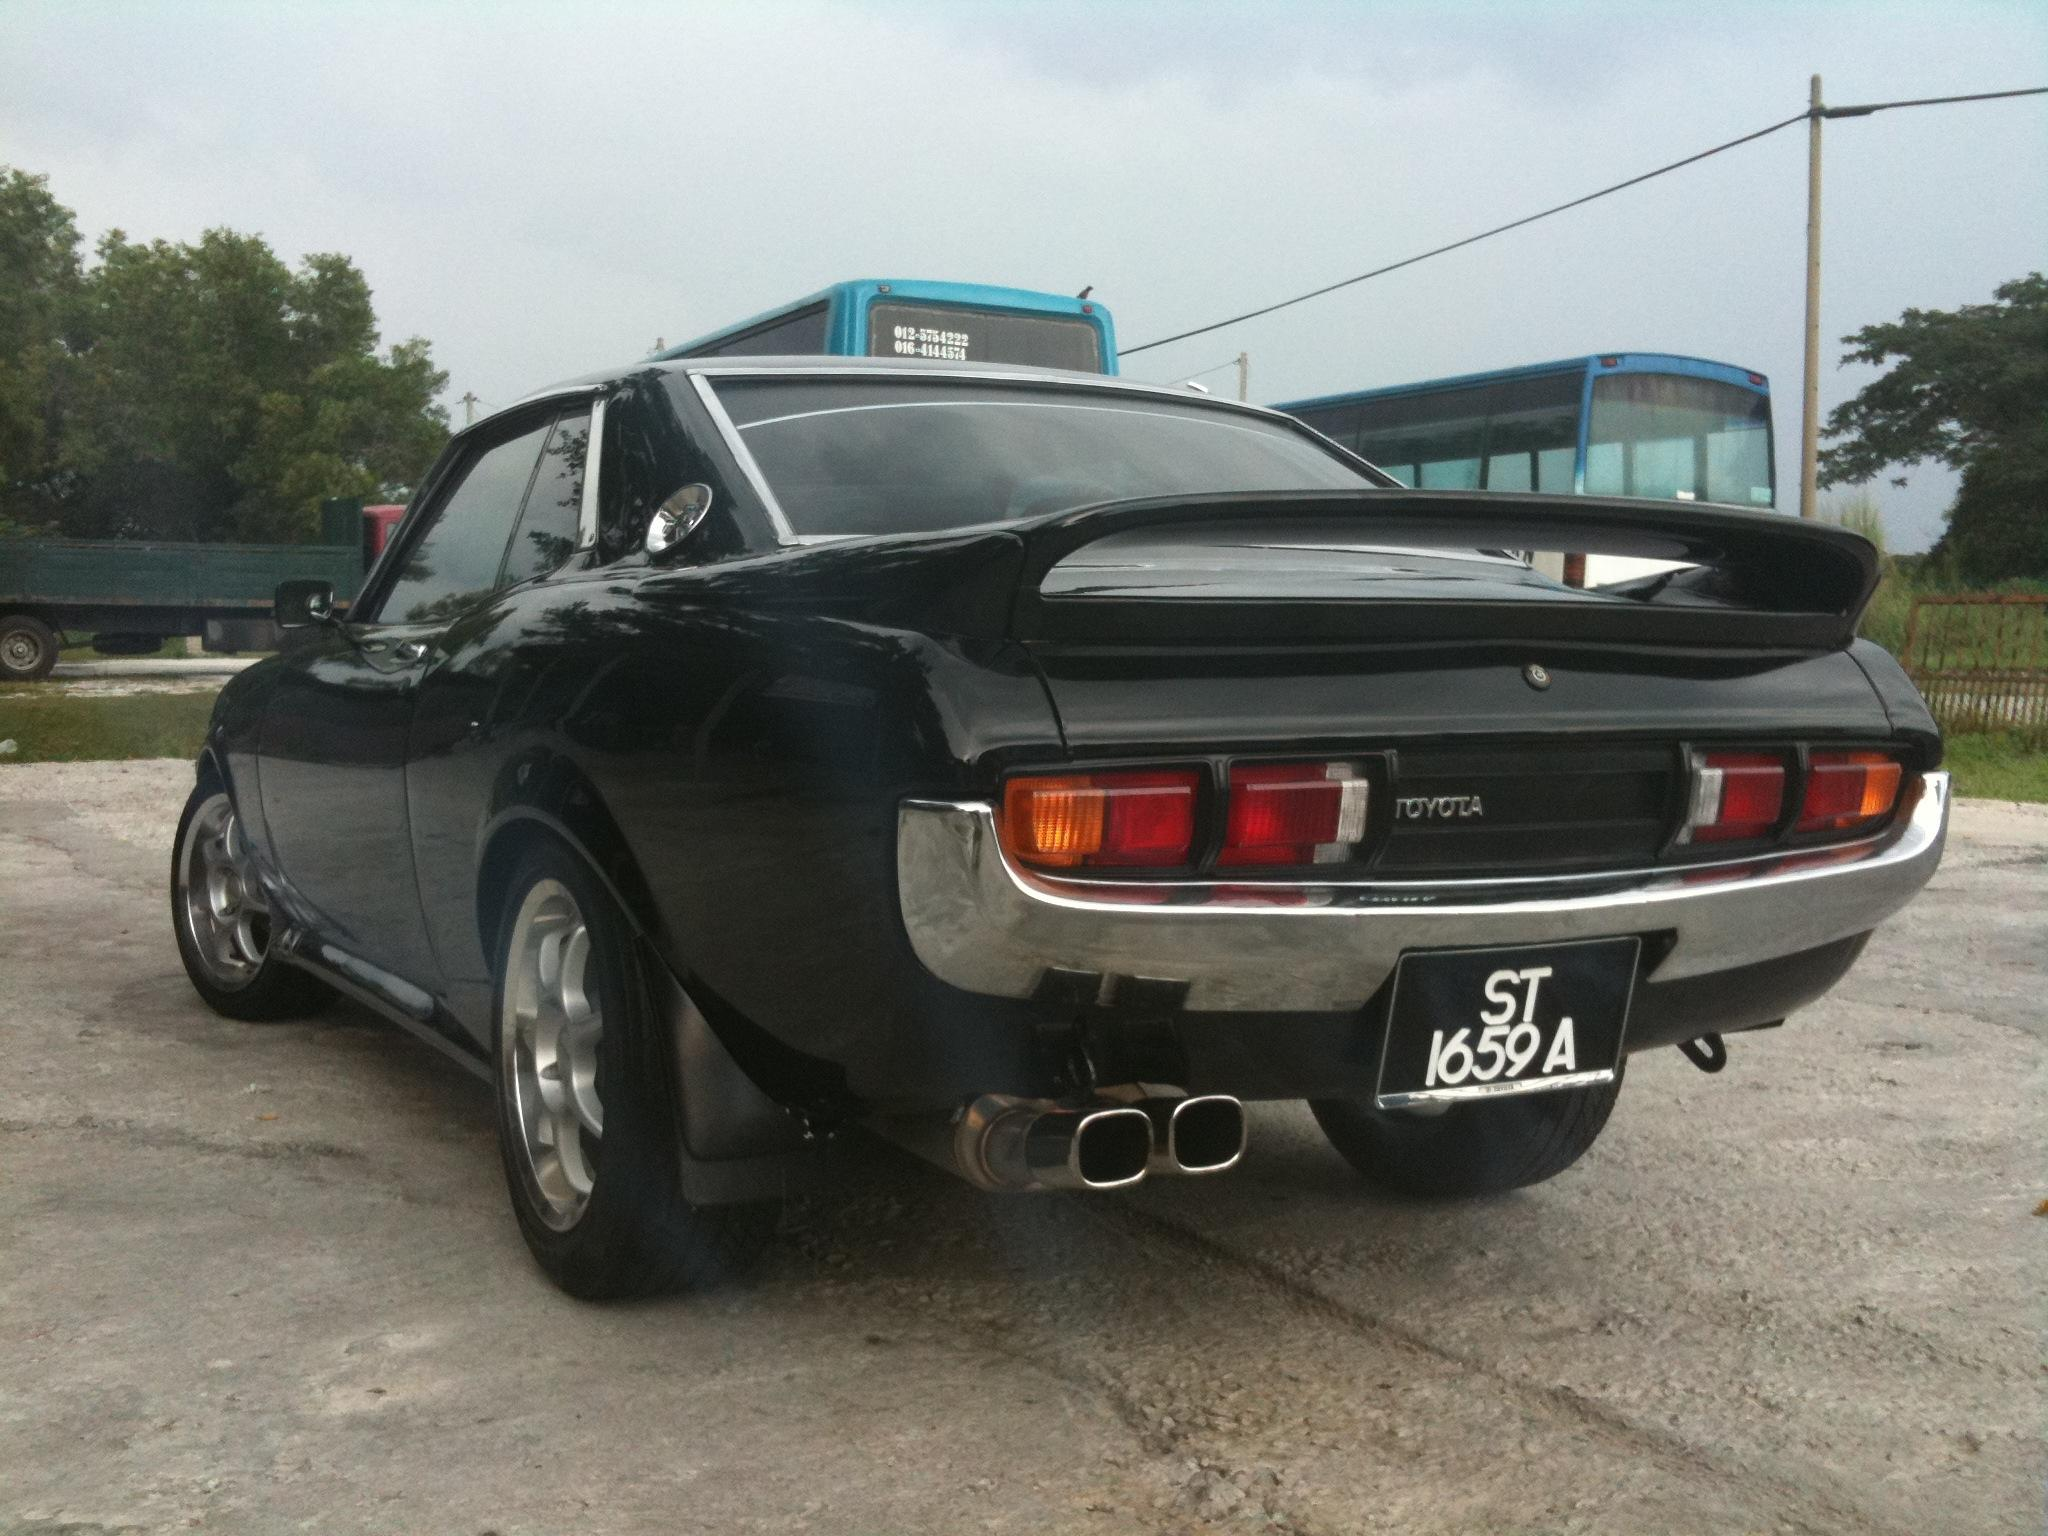 Naveensundras Profile In Ipoh 1975 Toyota Celica St Another Naveensundra Post 13916610